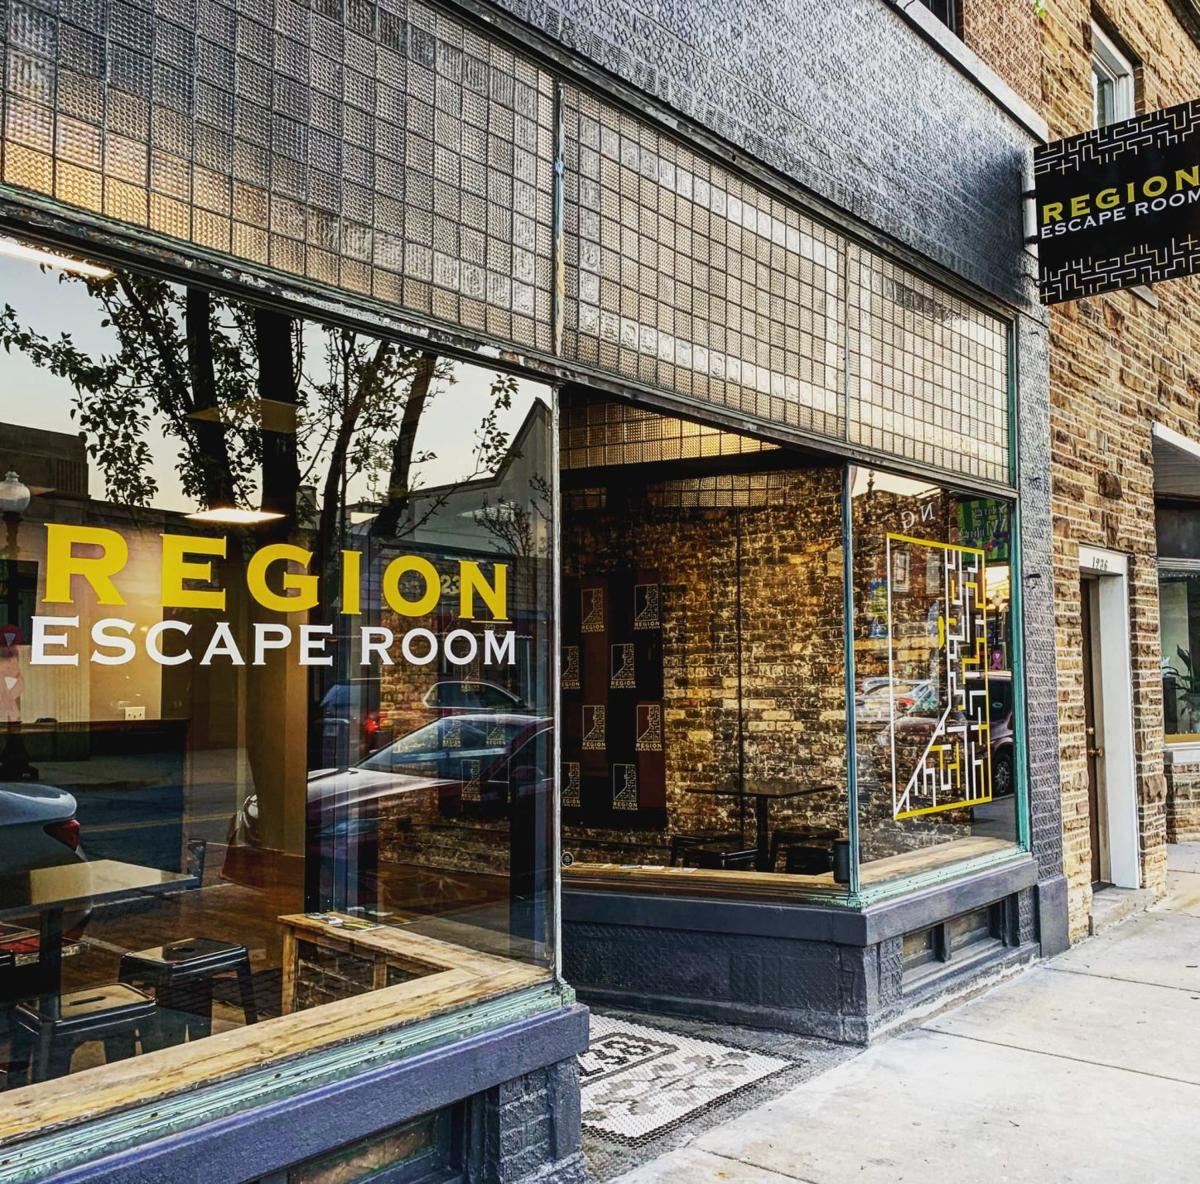 Region Escape Room, conceived of at Pierogi Fest, opens in Whiting